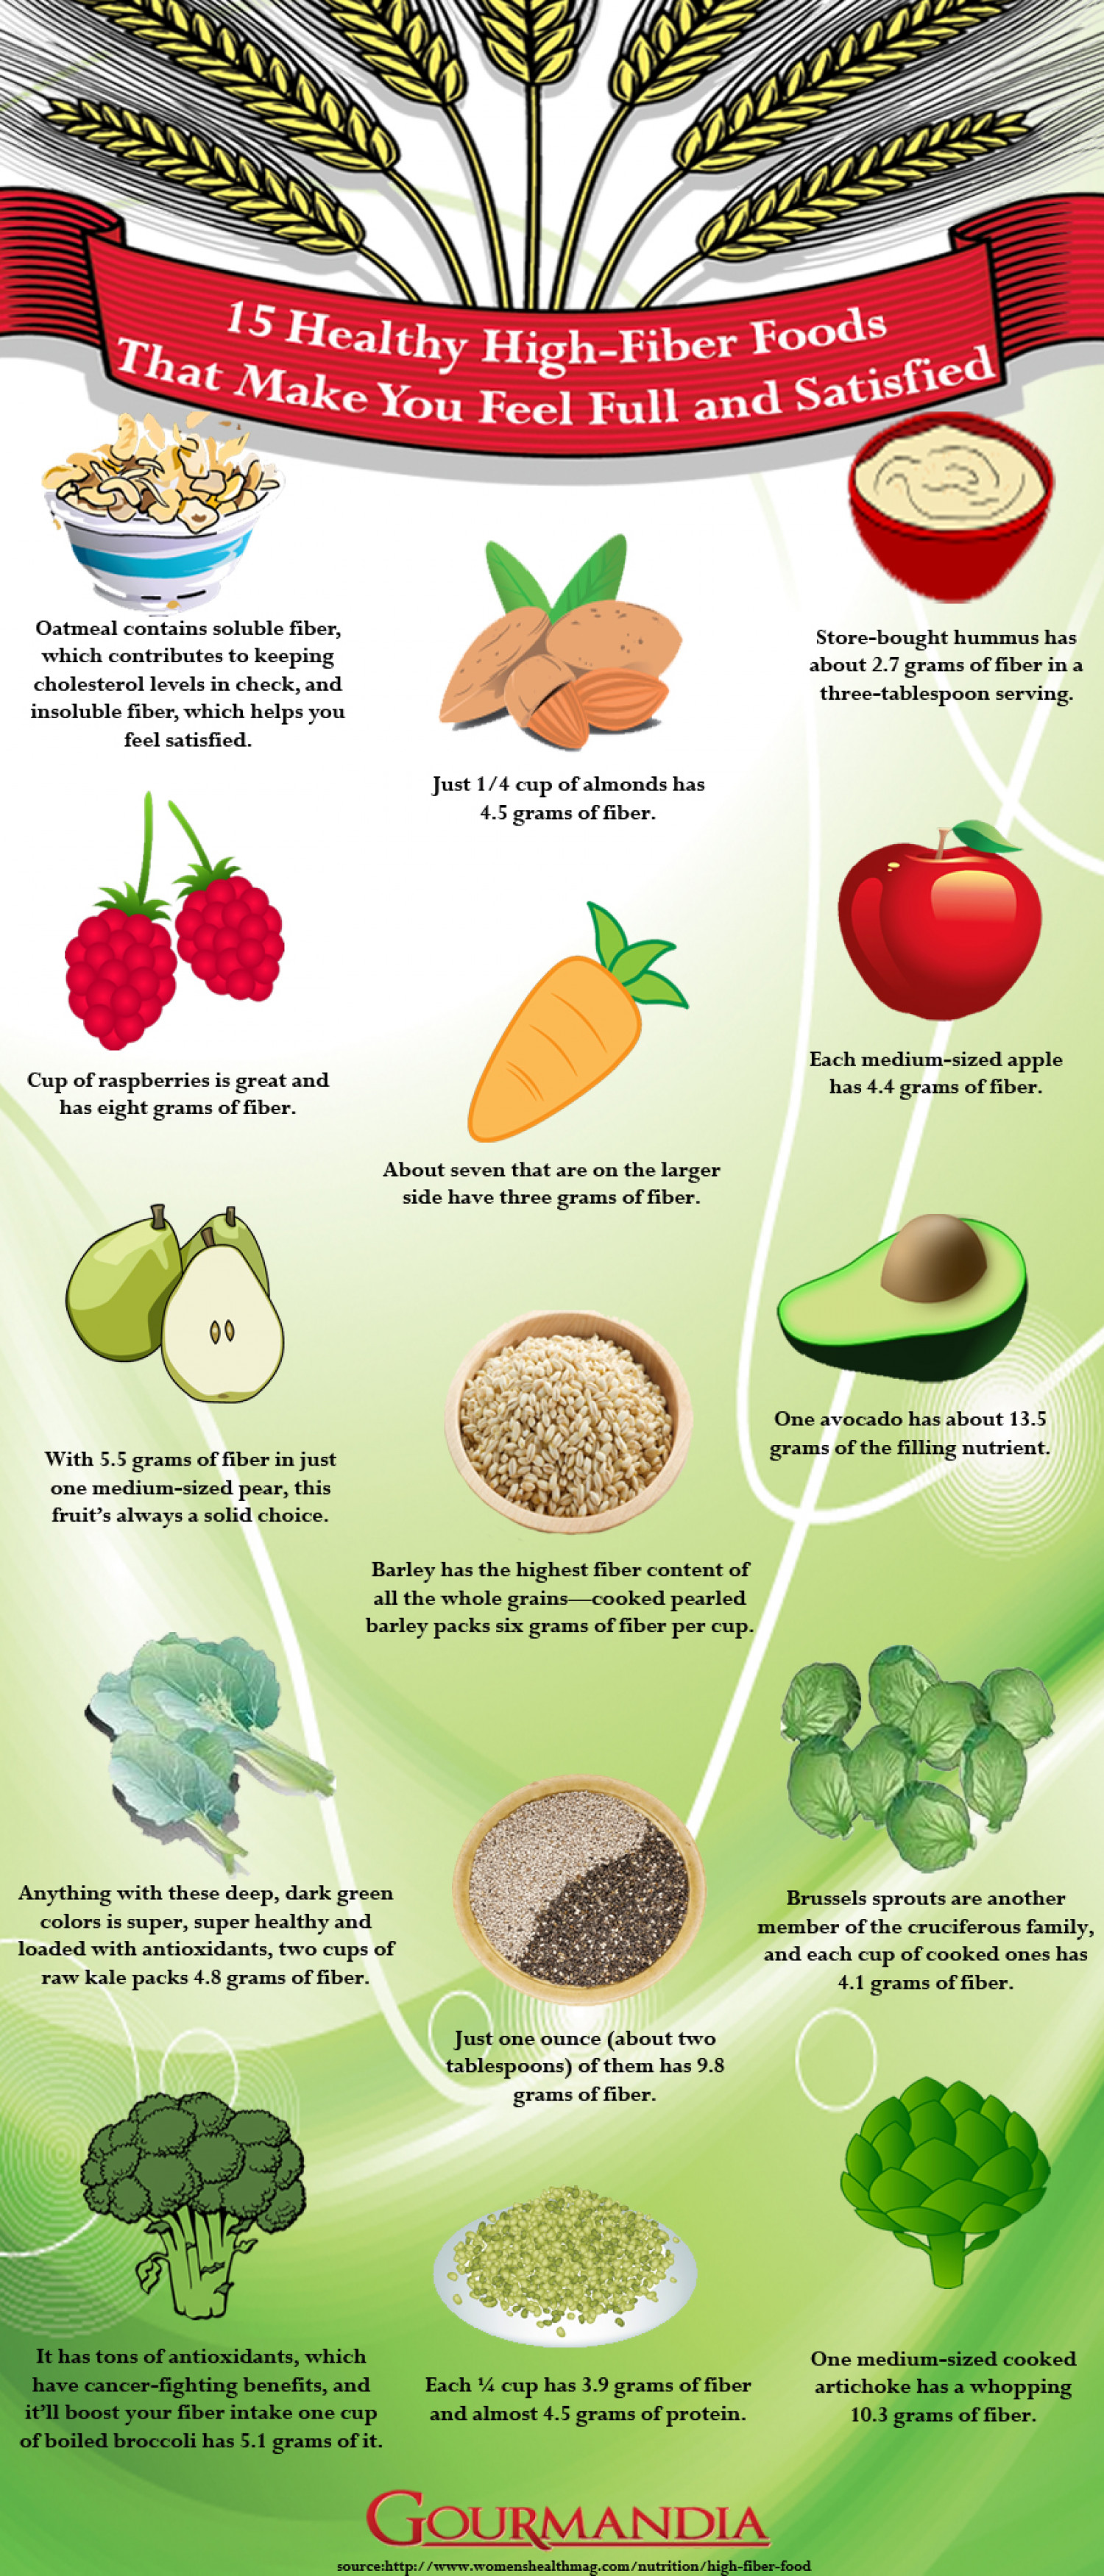 15 Healthy High-Fiber Foods That Make You Feel Full and Satisfied Infographic